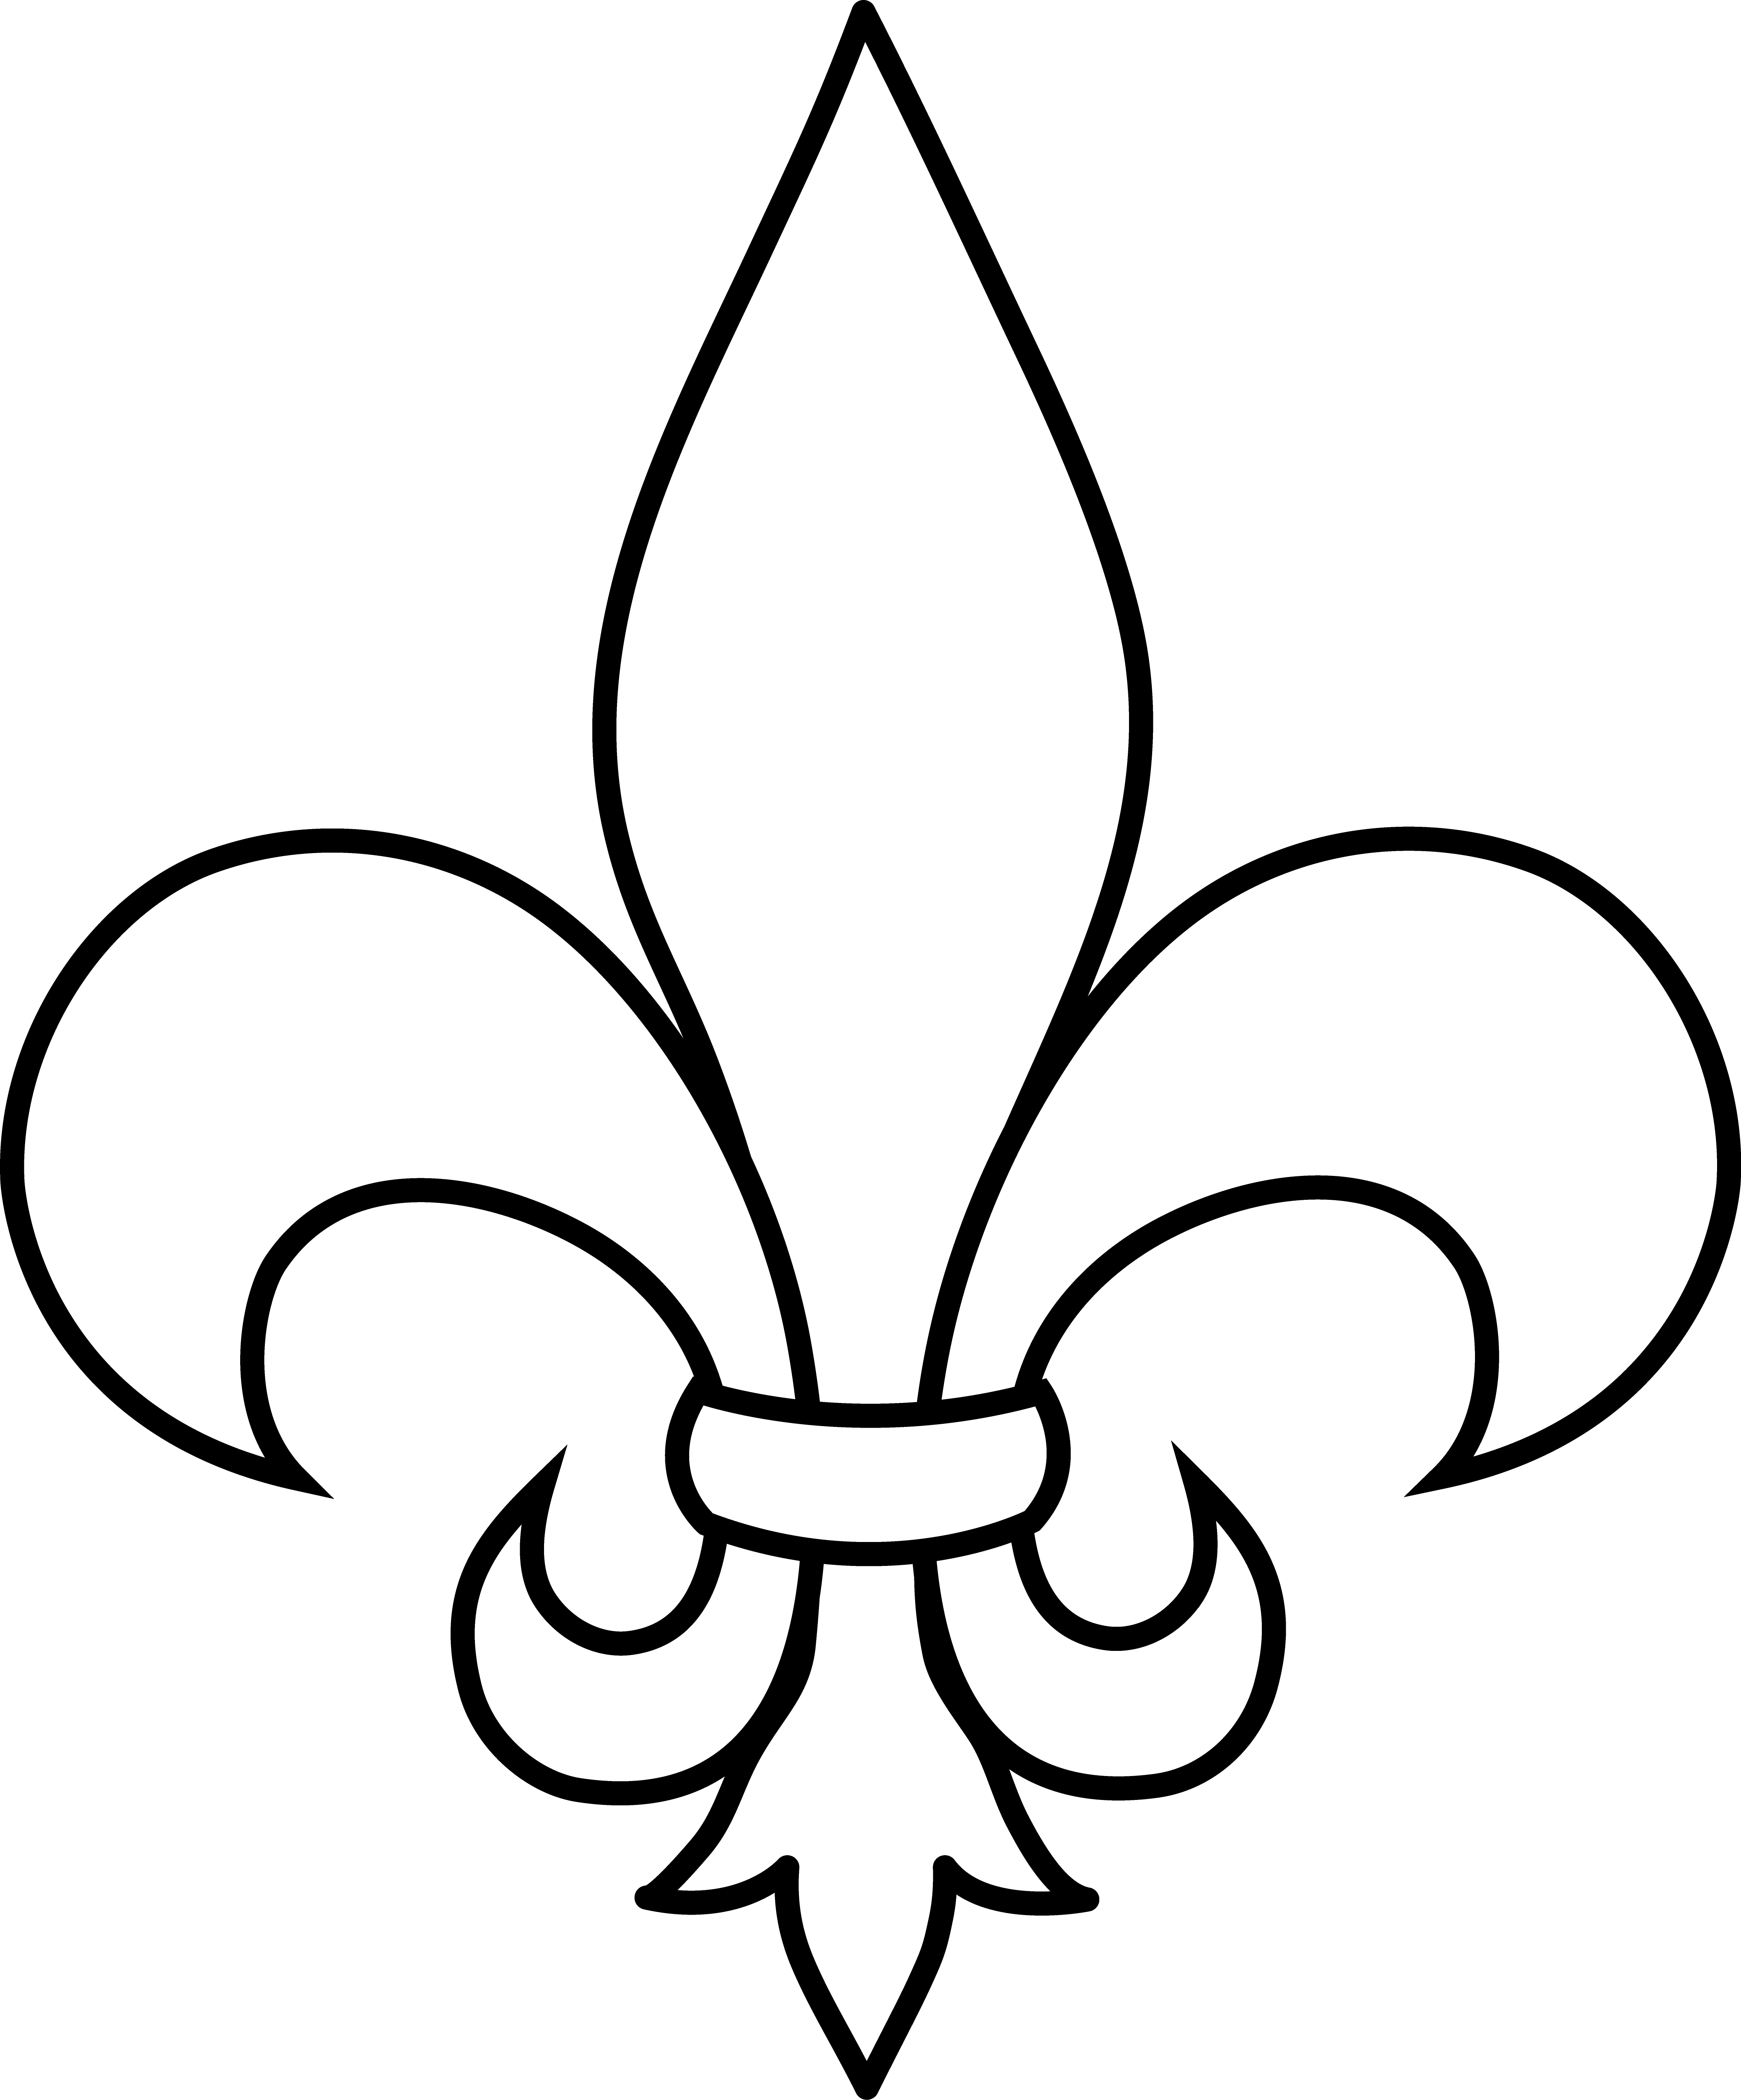 Fleur d lis clipart picture free stock frrench free clip art | Black and White Fleur De Lis Outline - Free ... picture free stock